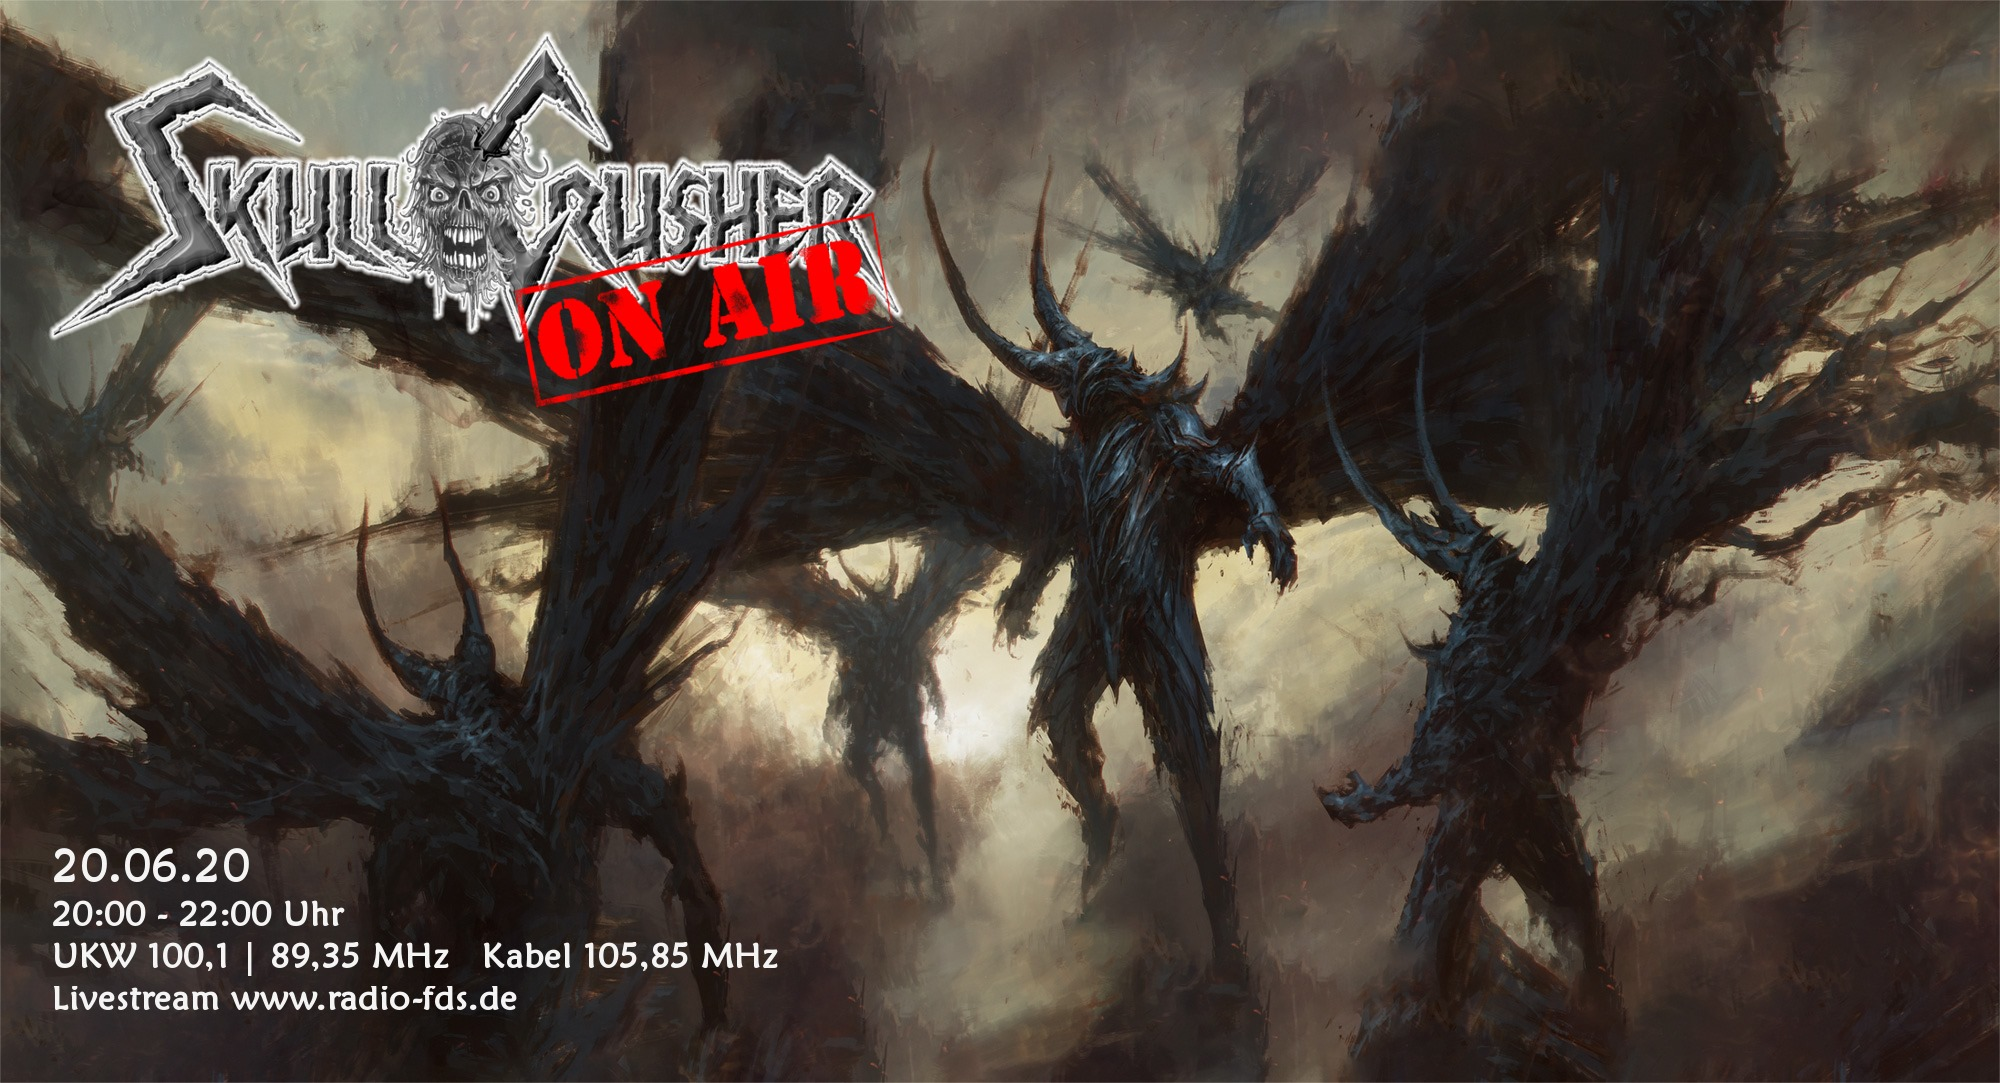 Deaf Aid - Radio SkullCrusher on Air